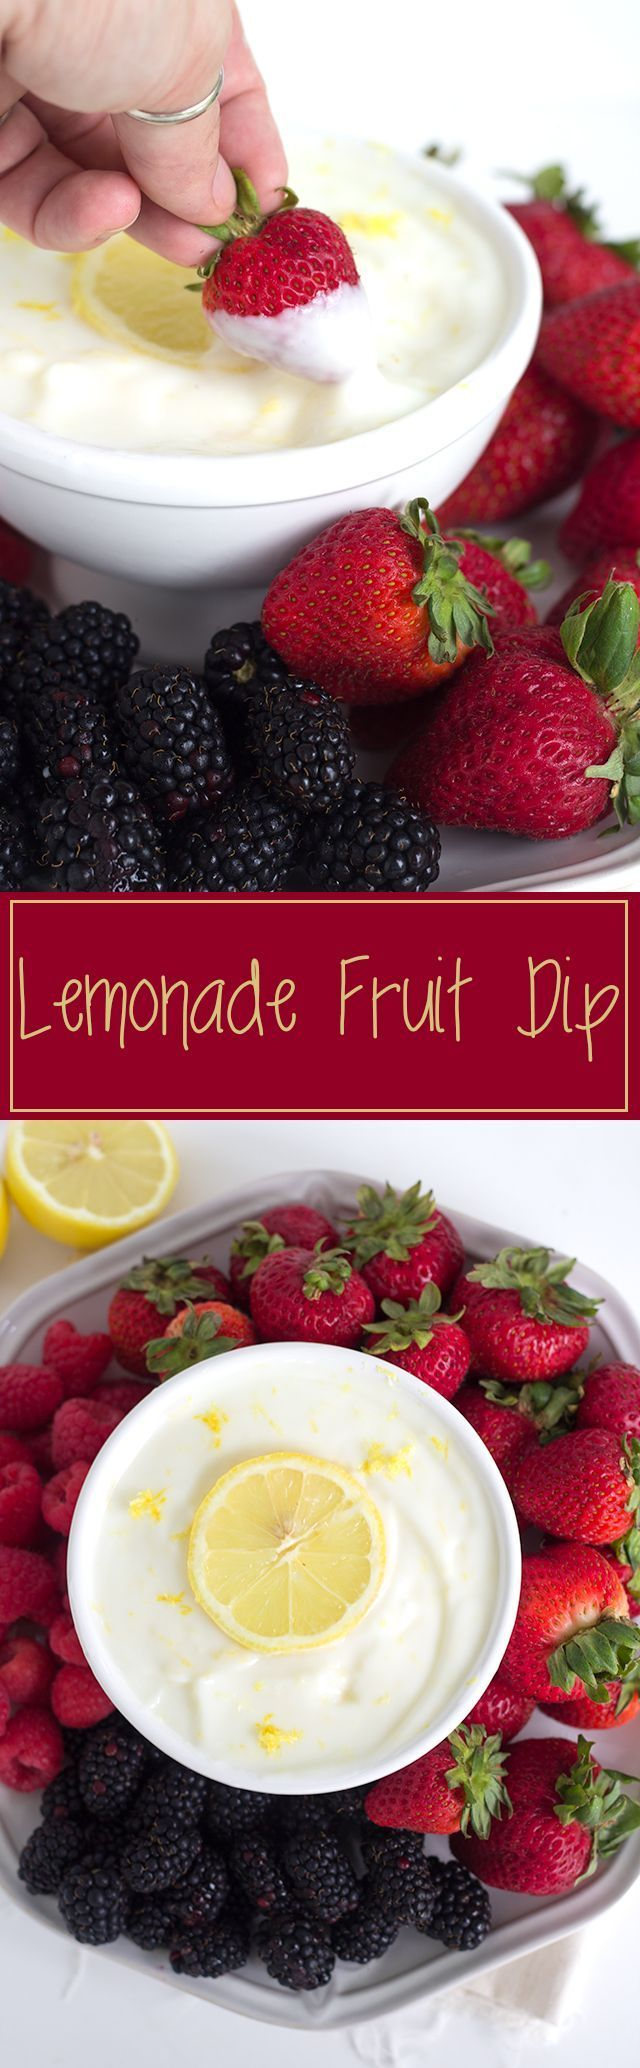 Lemonade Fruit Dip - easy and healthy fruit dip with vanilla yogurt and a lemon! Perfect for any berry!